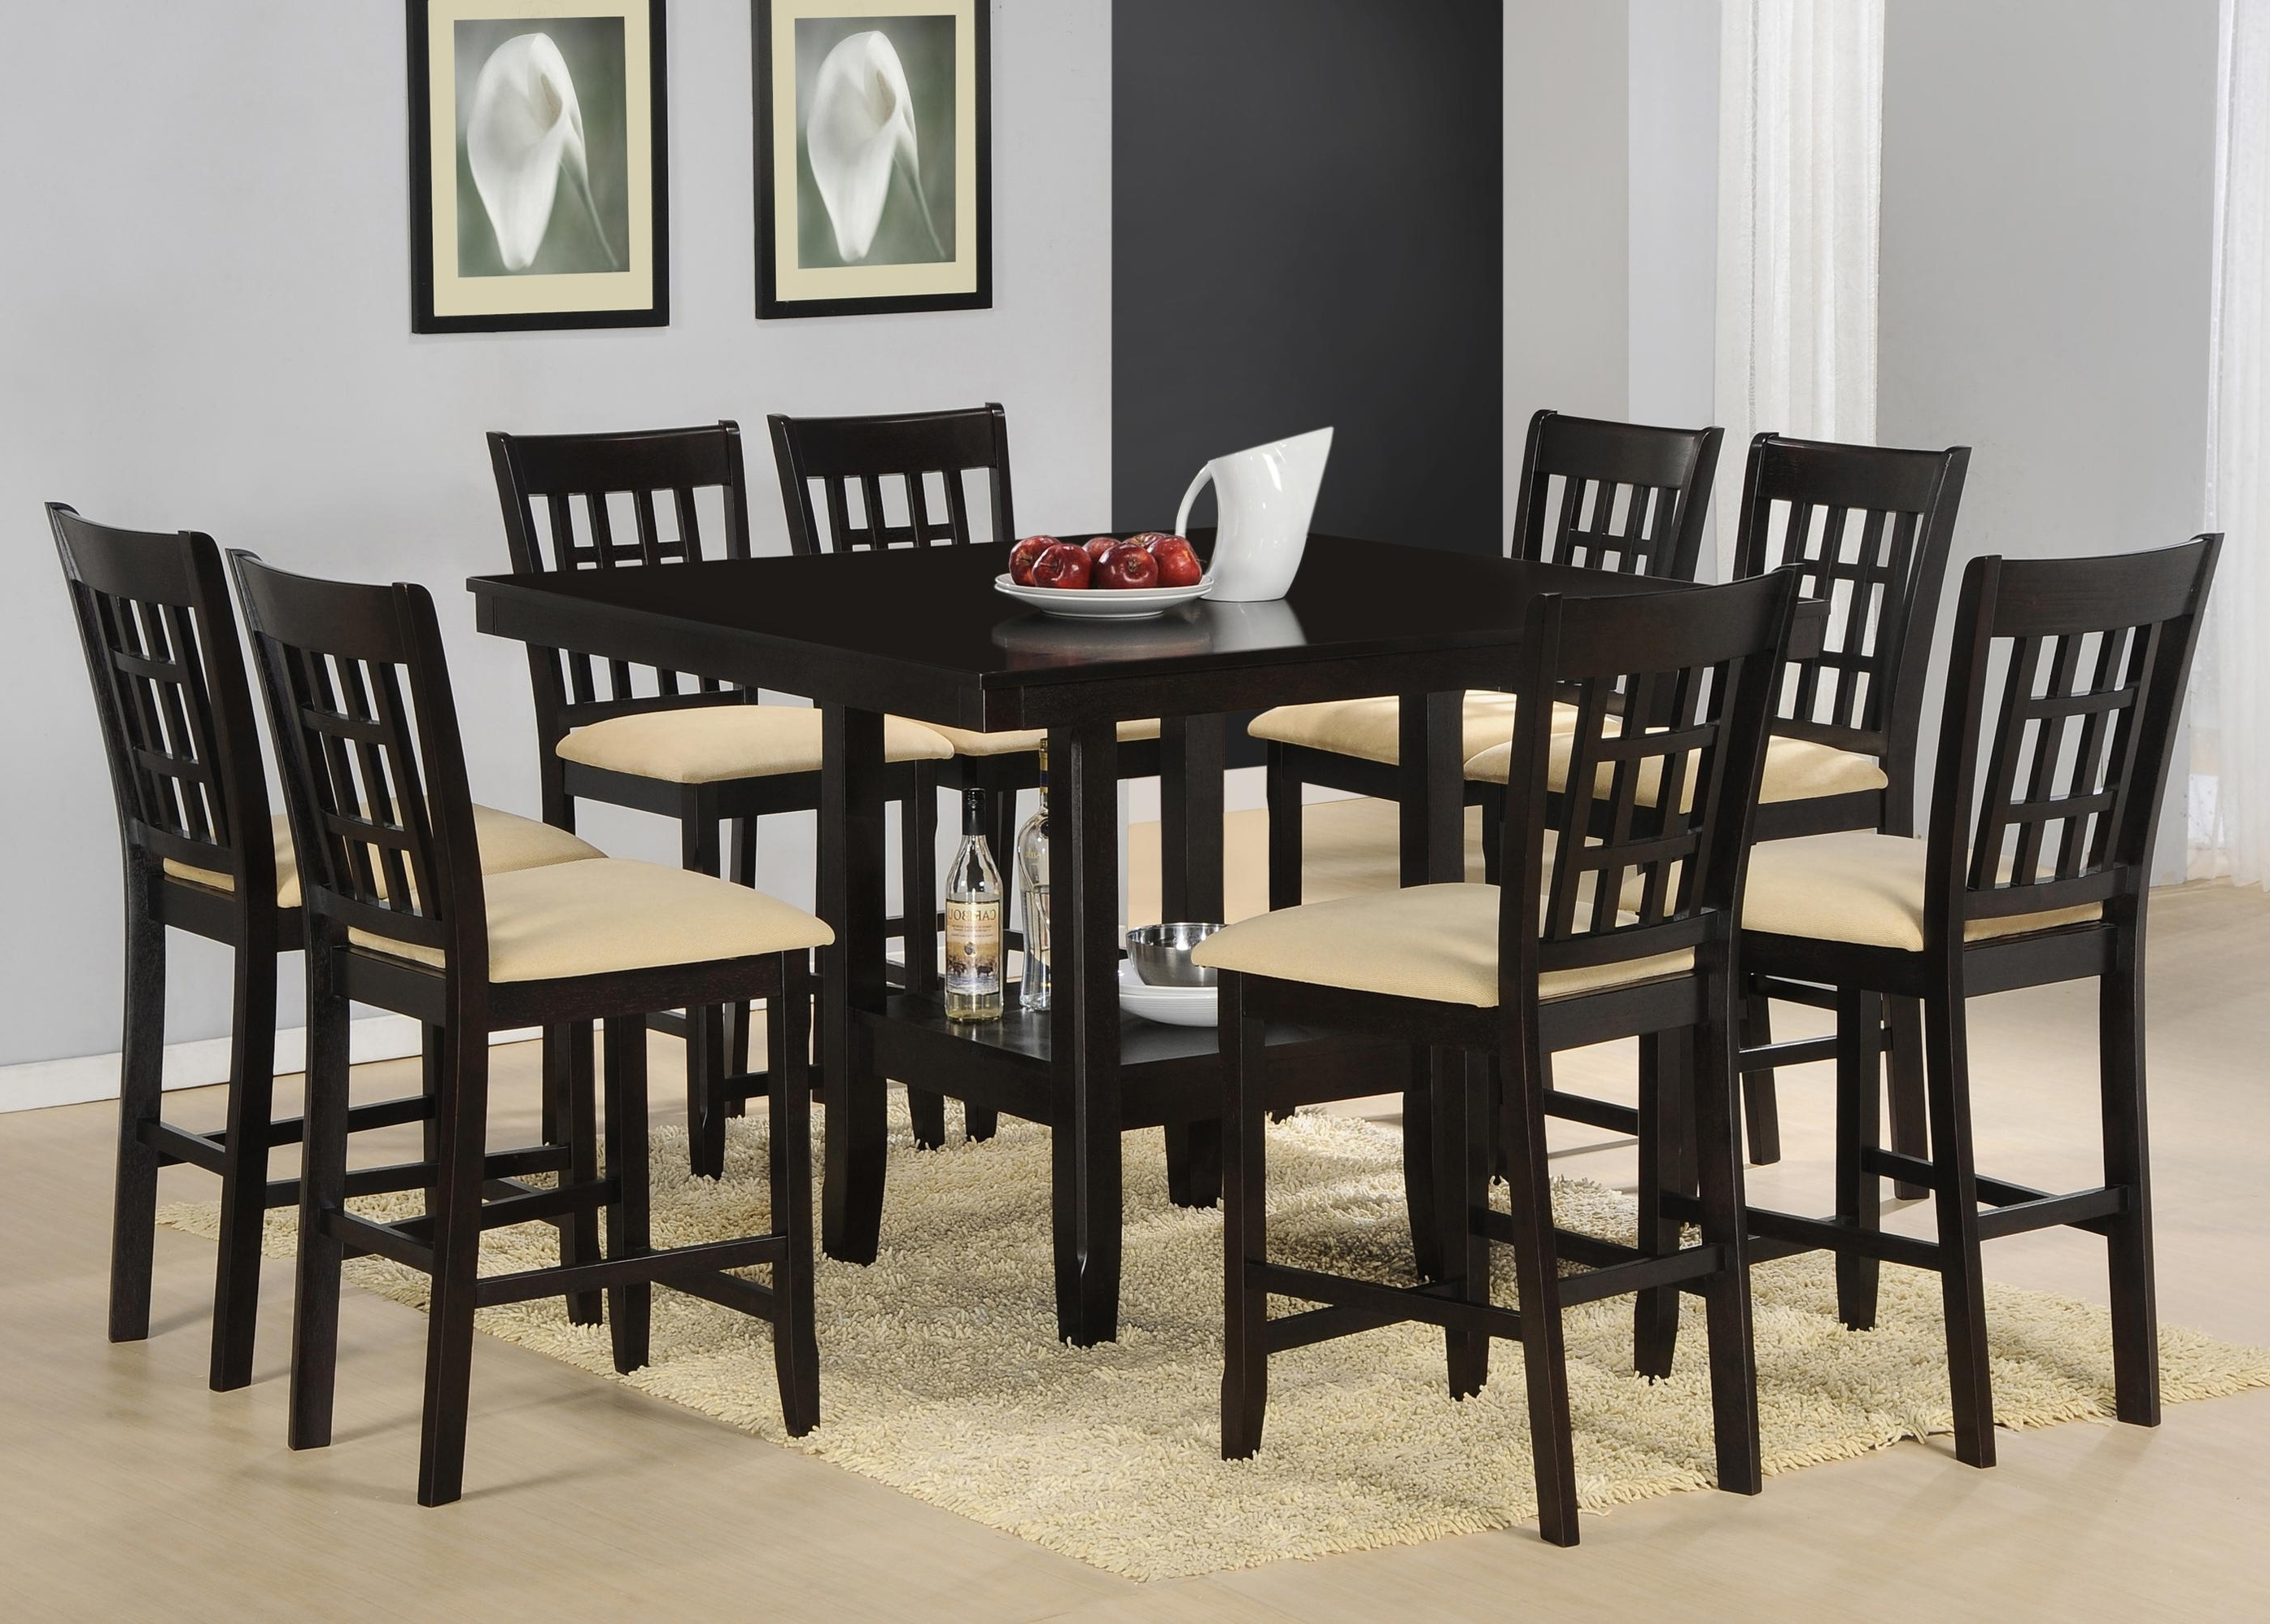 Recent Chapleau Ii 9 Piece Extension Dining Table Sets for Cheery Caira Piece Extension Set Back Chairs Caira Piece Extension